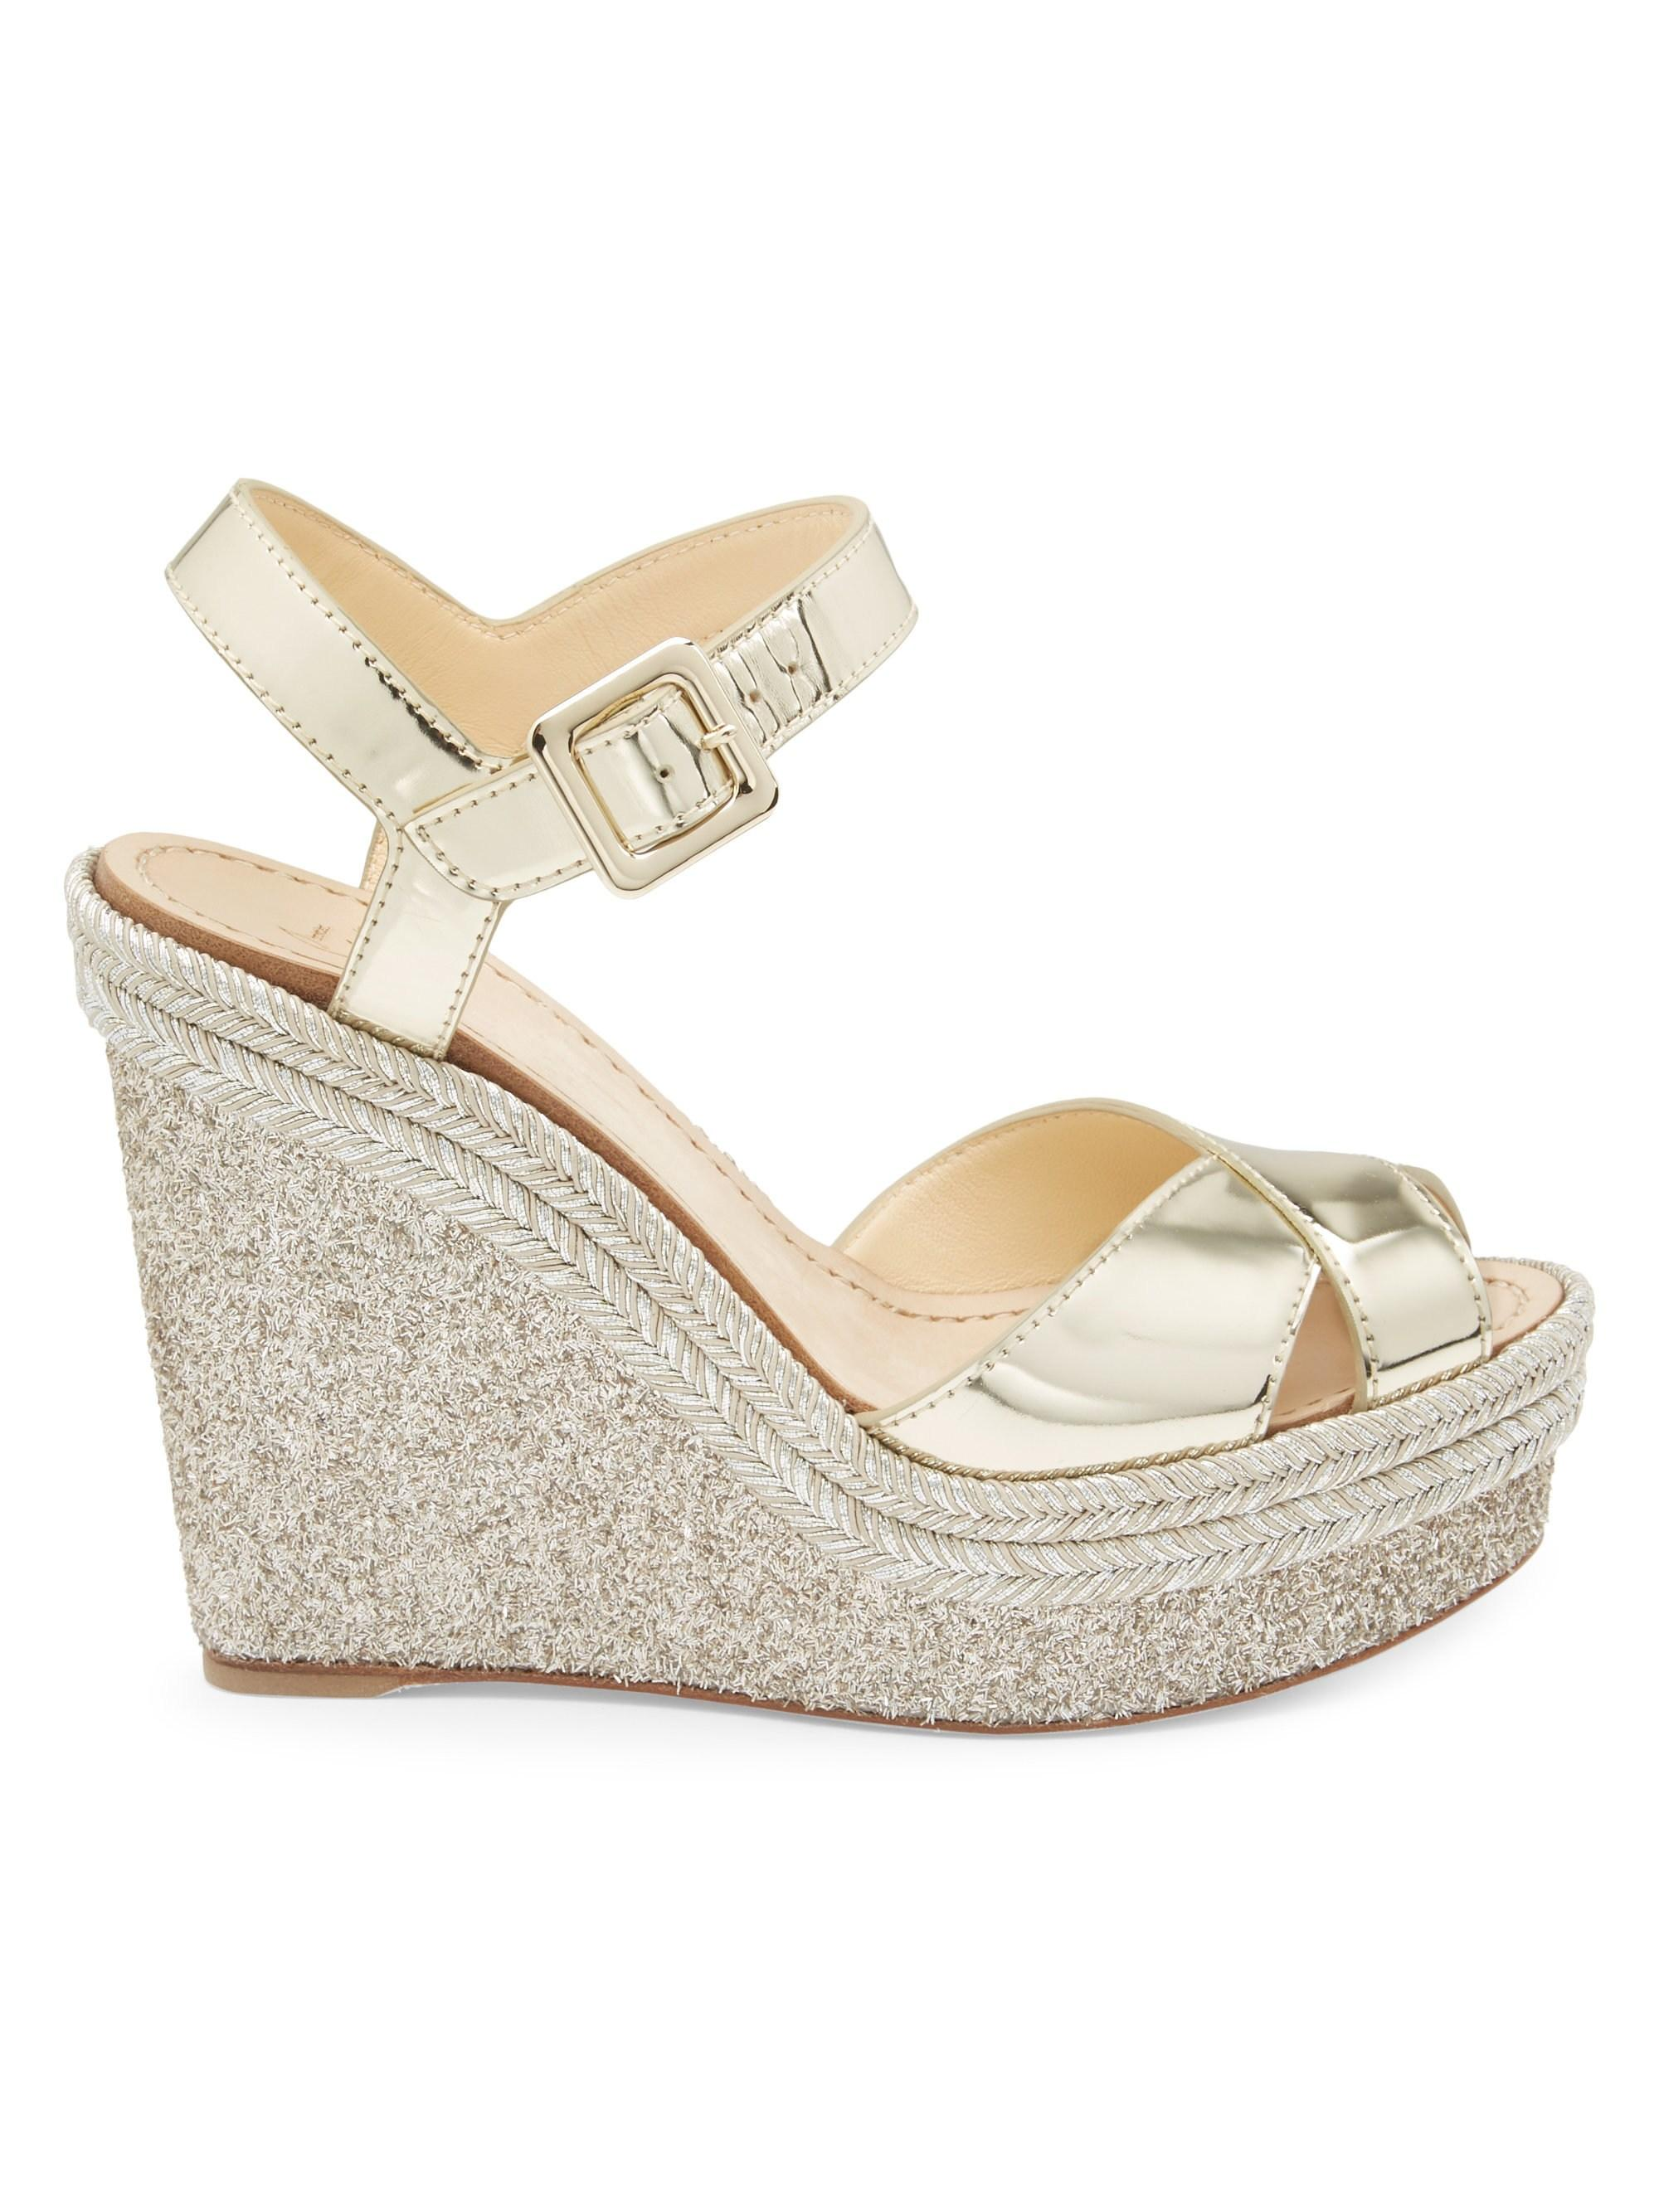 b964d2801626 Christian Louboutin. Women s Metallic Almeria 120 Mirrored Espadrille Platform  Wedge Sandals